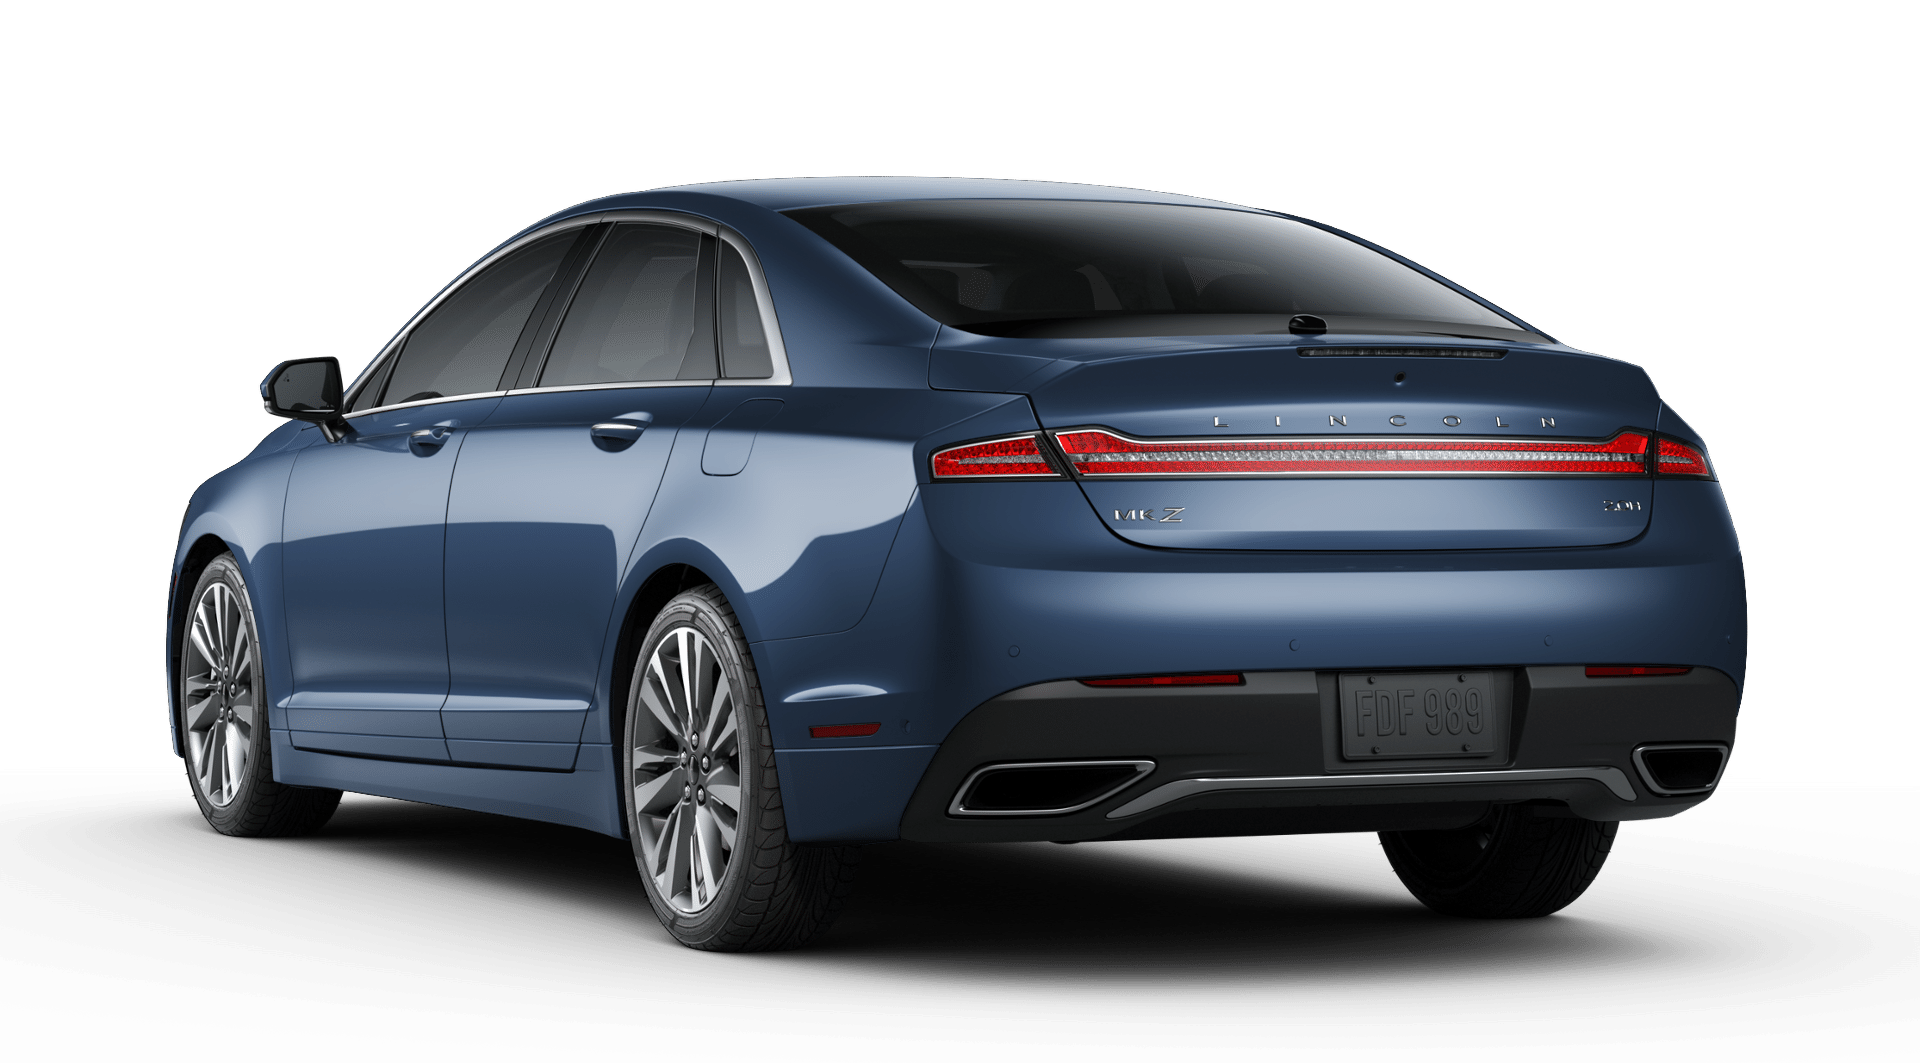 2019 Lincoln MKZ Hybrid Reserve II Blue Exterior Rear View Picture.png